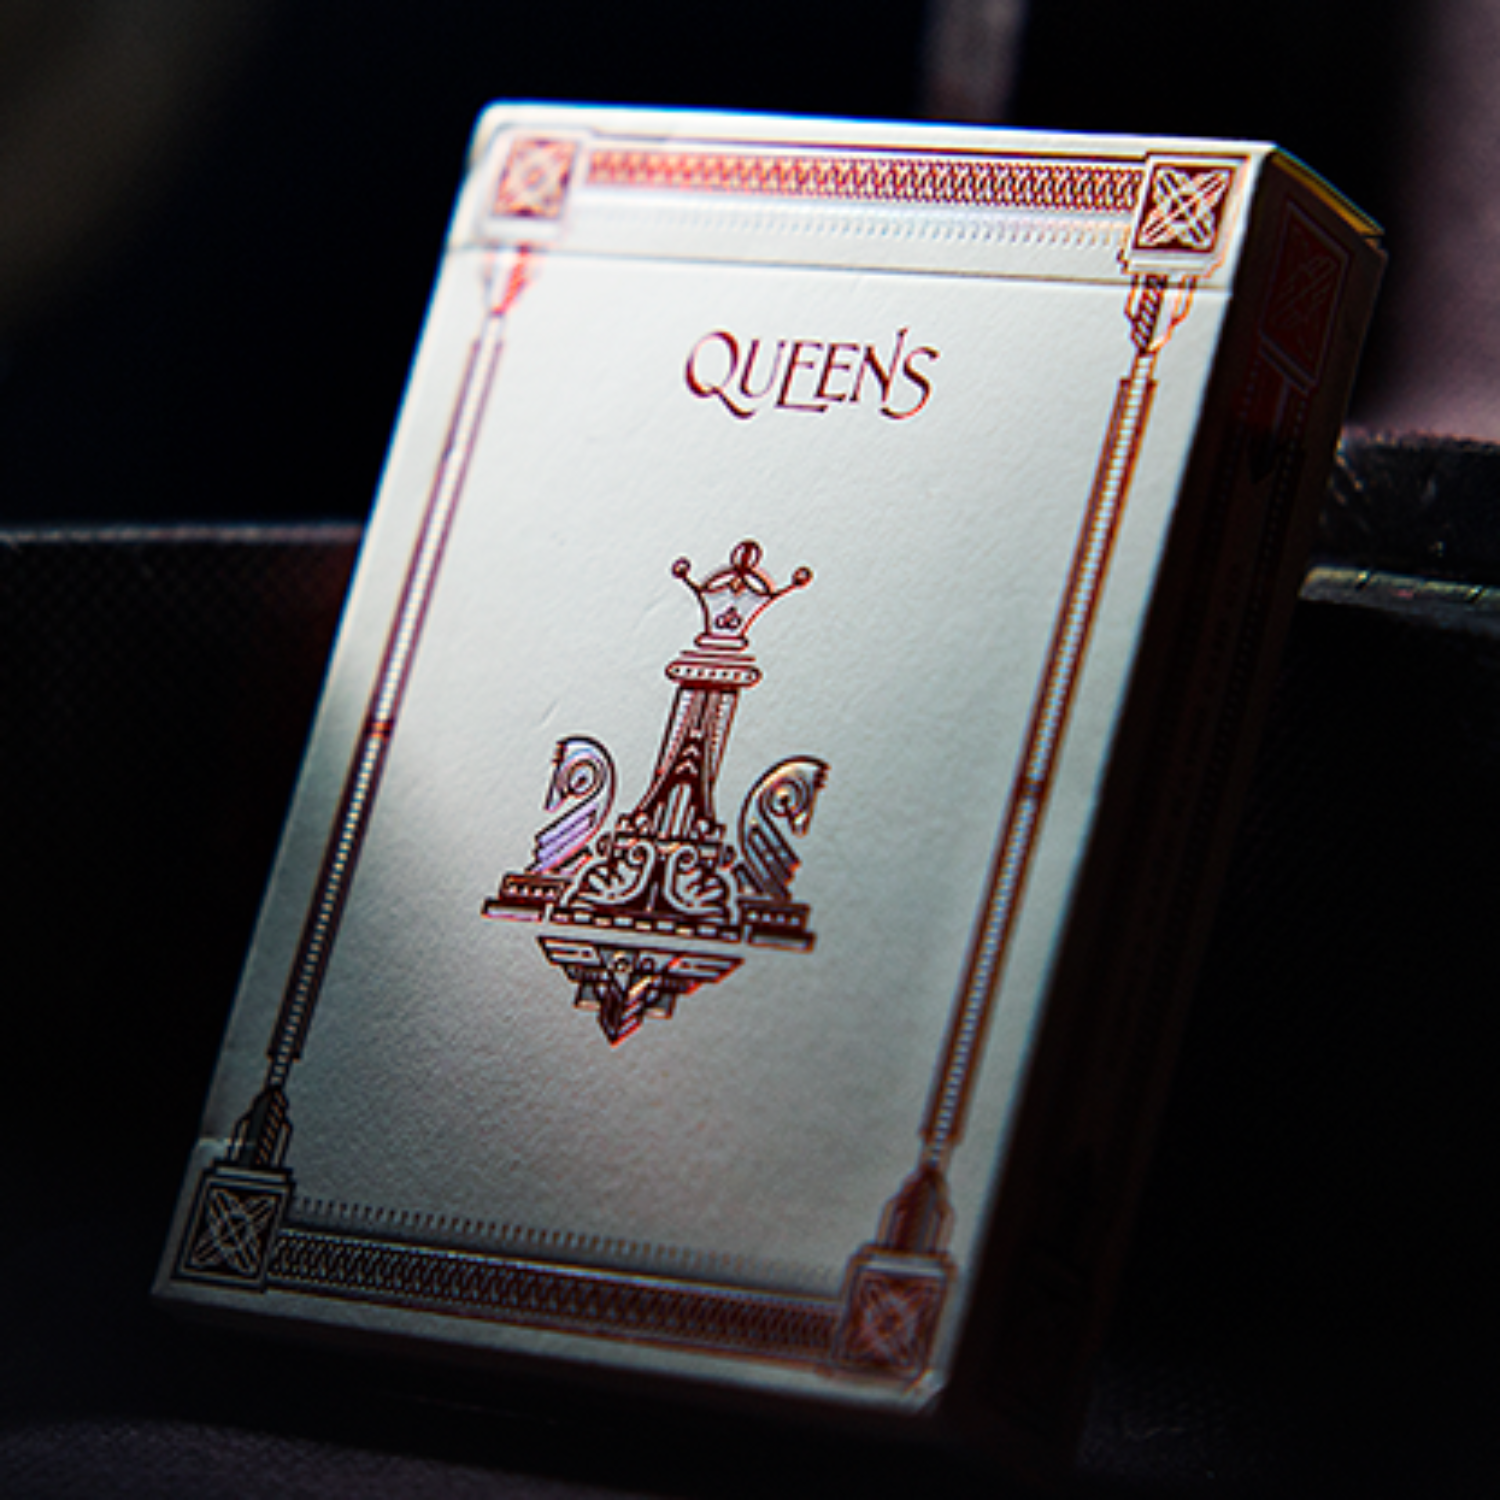 [퀸즈덱]Queens Playing Cards